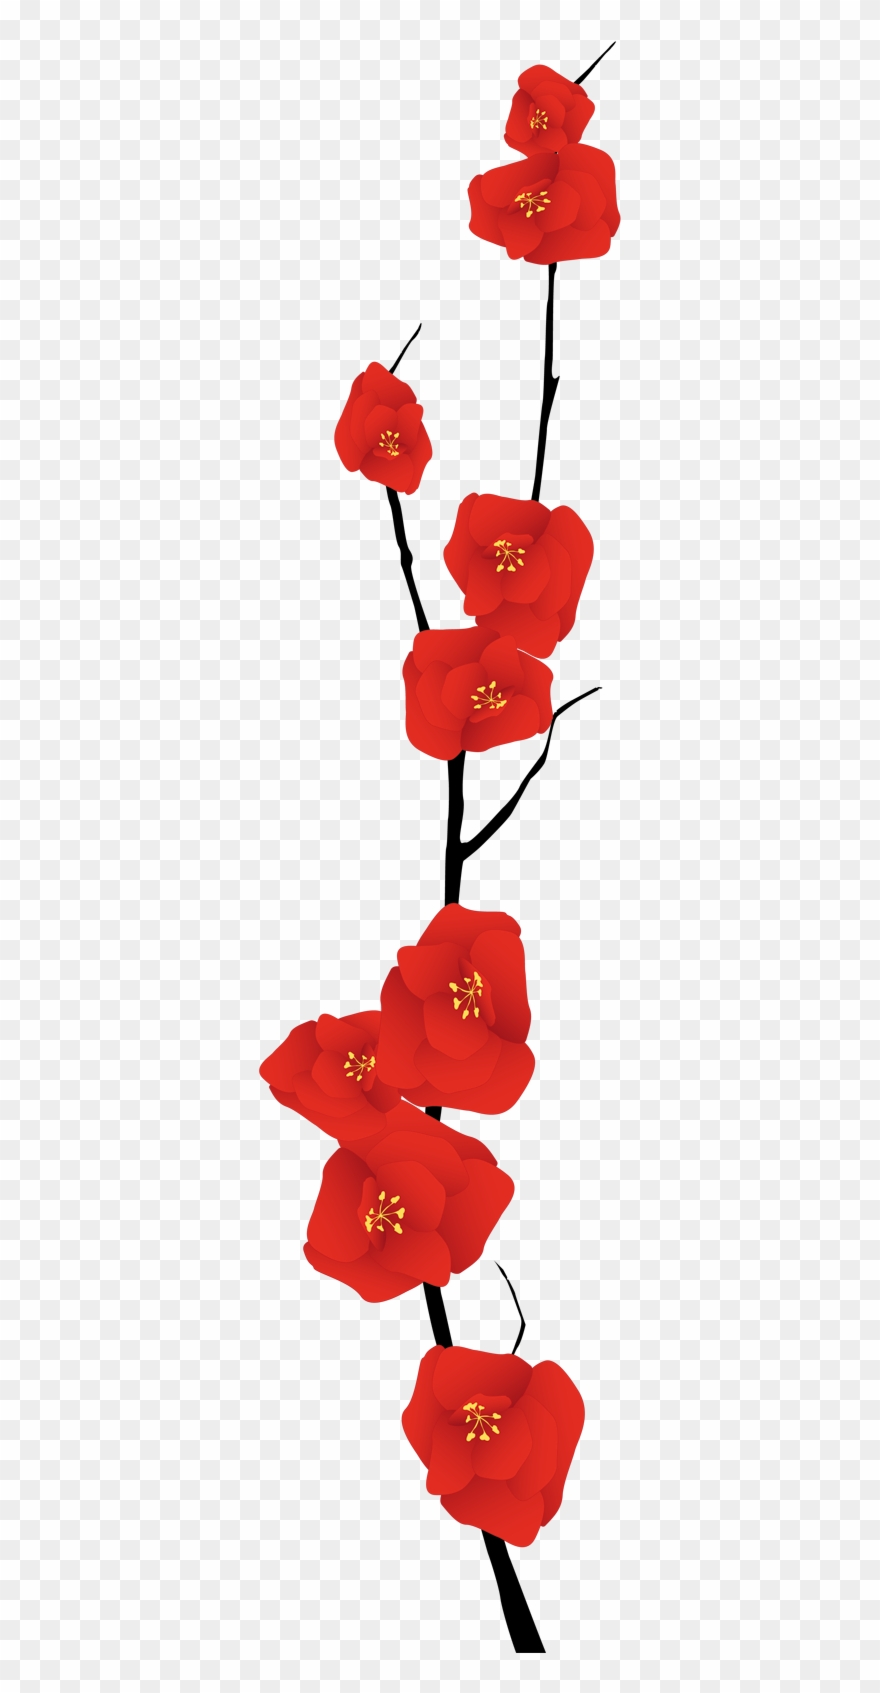 Flores rojas clipart freeuse stock Red Flowers Branch Decal - Ramas Con Flores Rojas Clipart (#2049147 ... freeuse stock